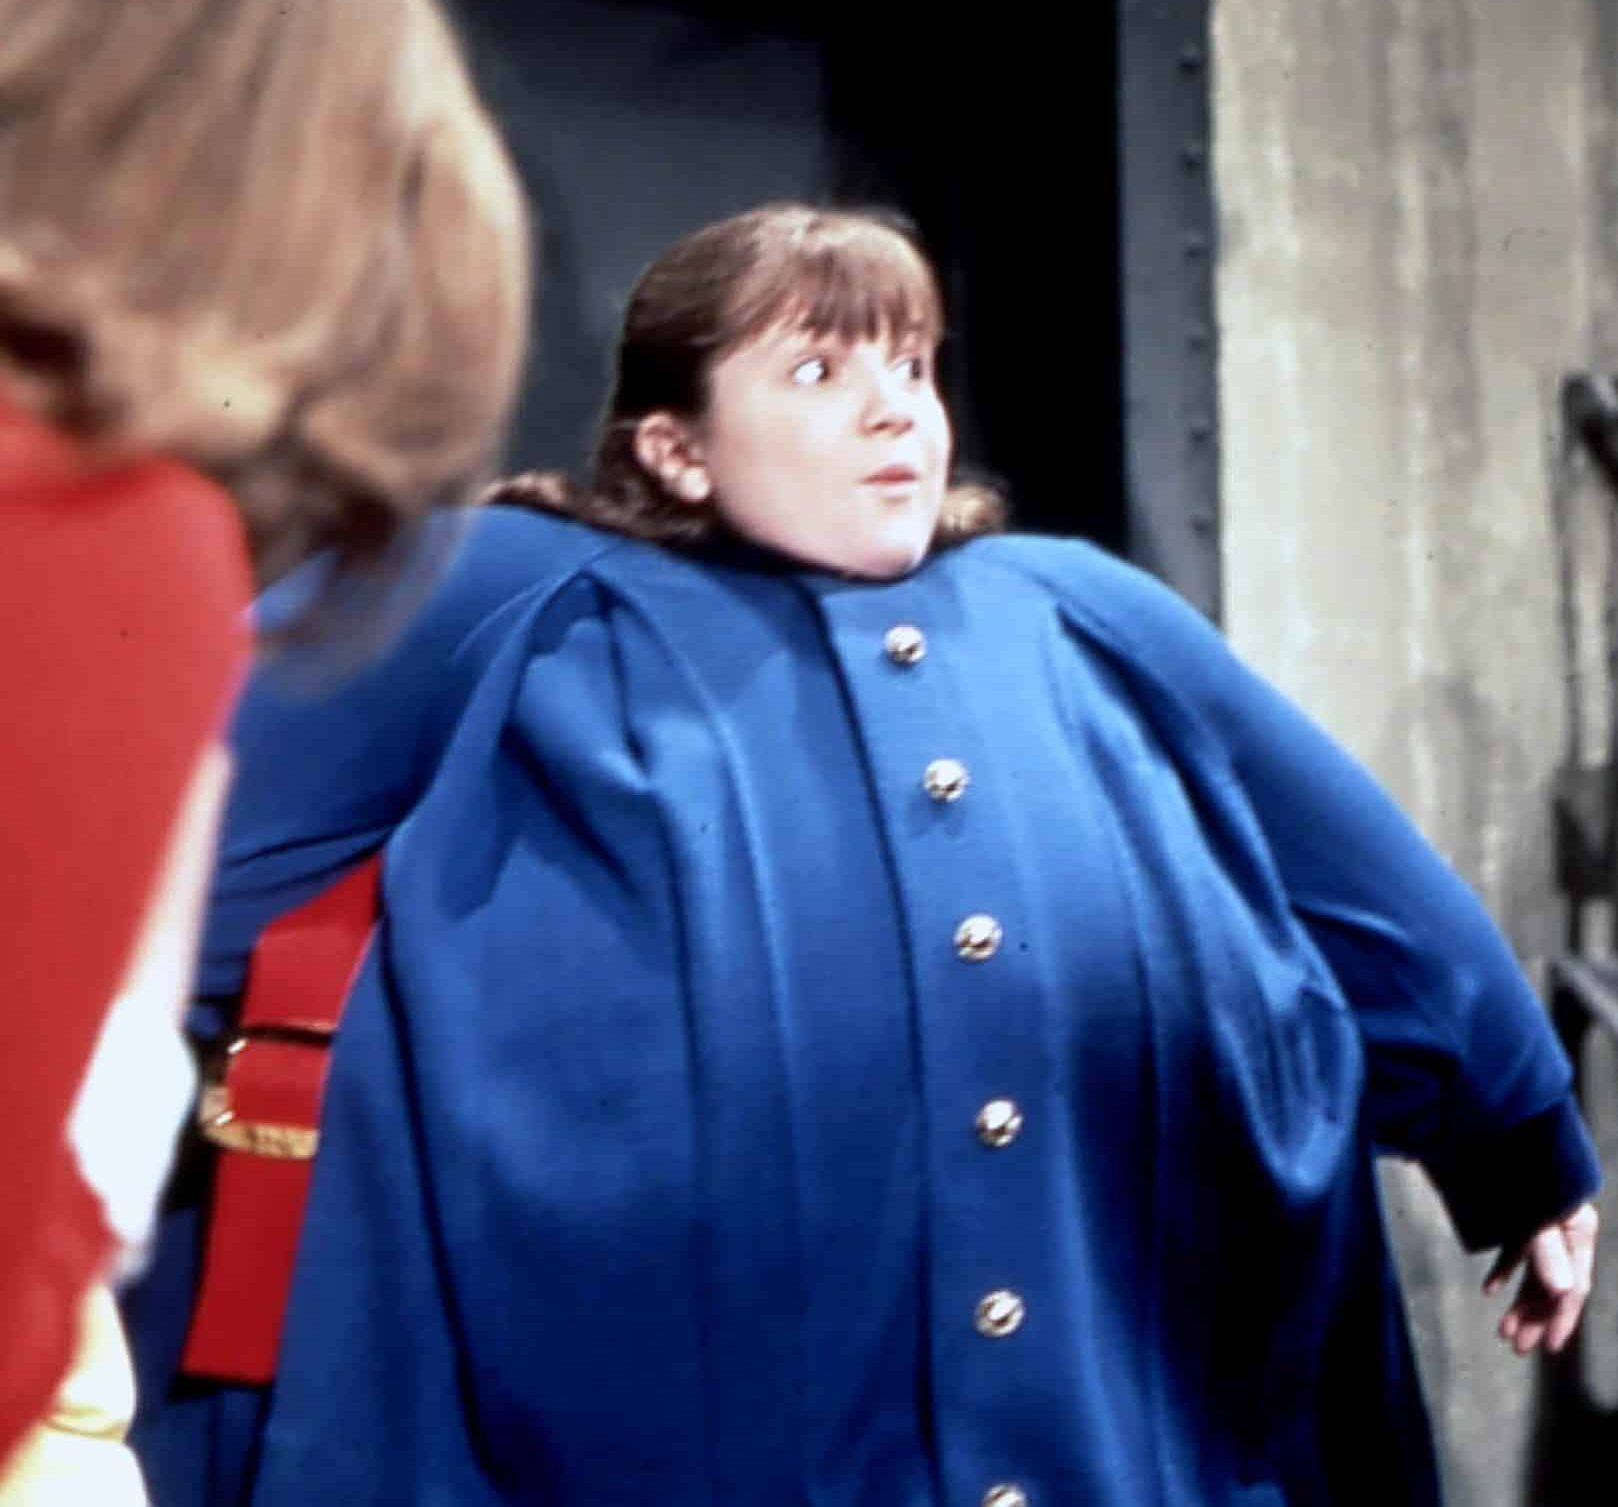 190711 denise nickerson violet willy wonka cs 909a 849ae33a465d25a843d0c16cae737f81 e1622560242550 28 Things You Probably Never Knew About Willy Wonka And The Chocolate Factory